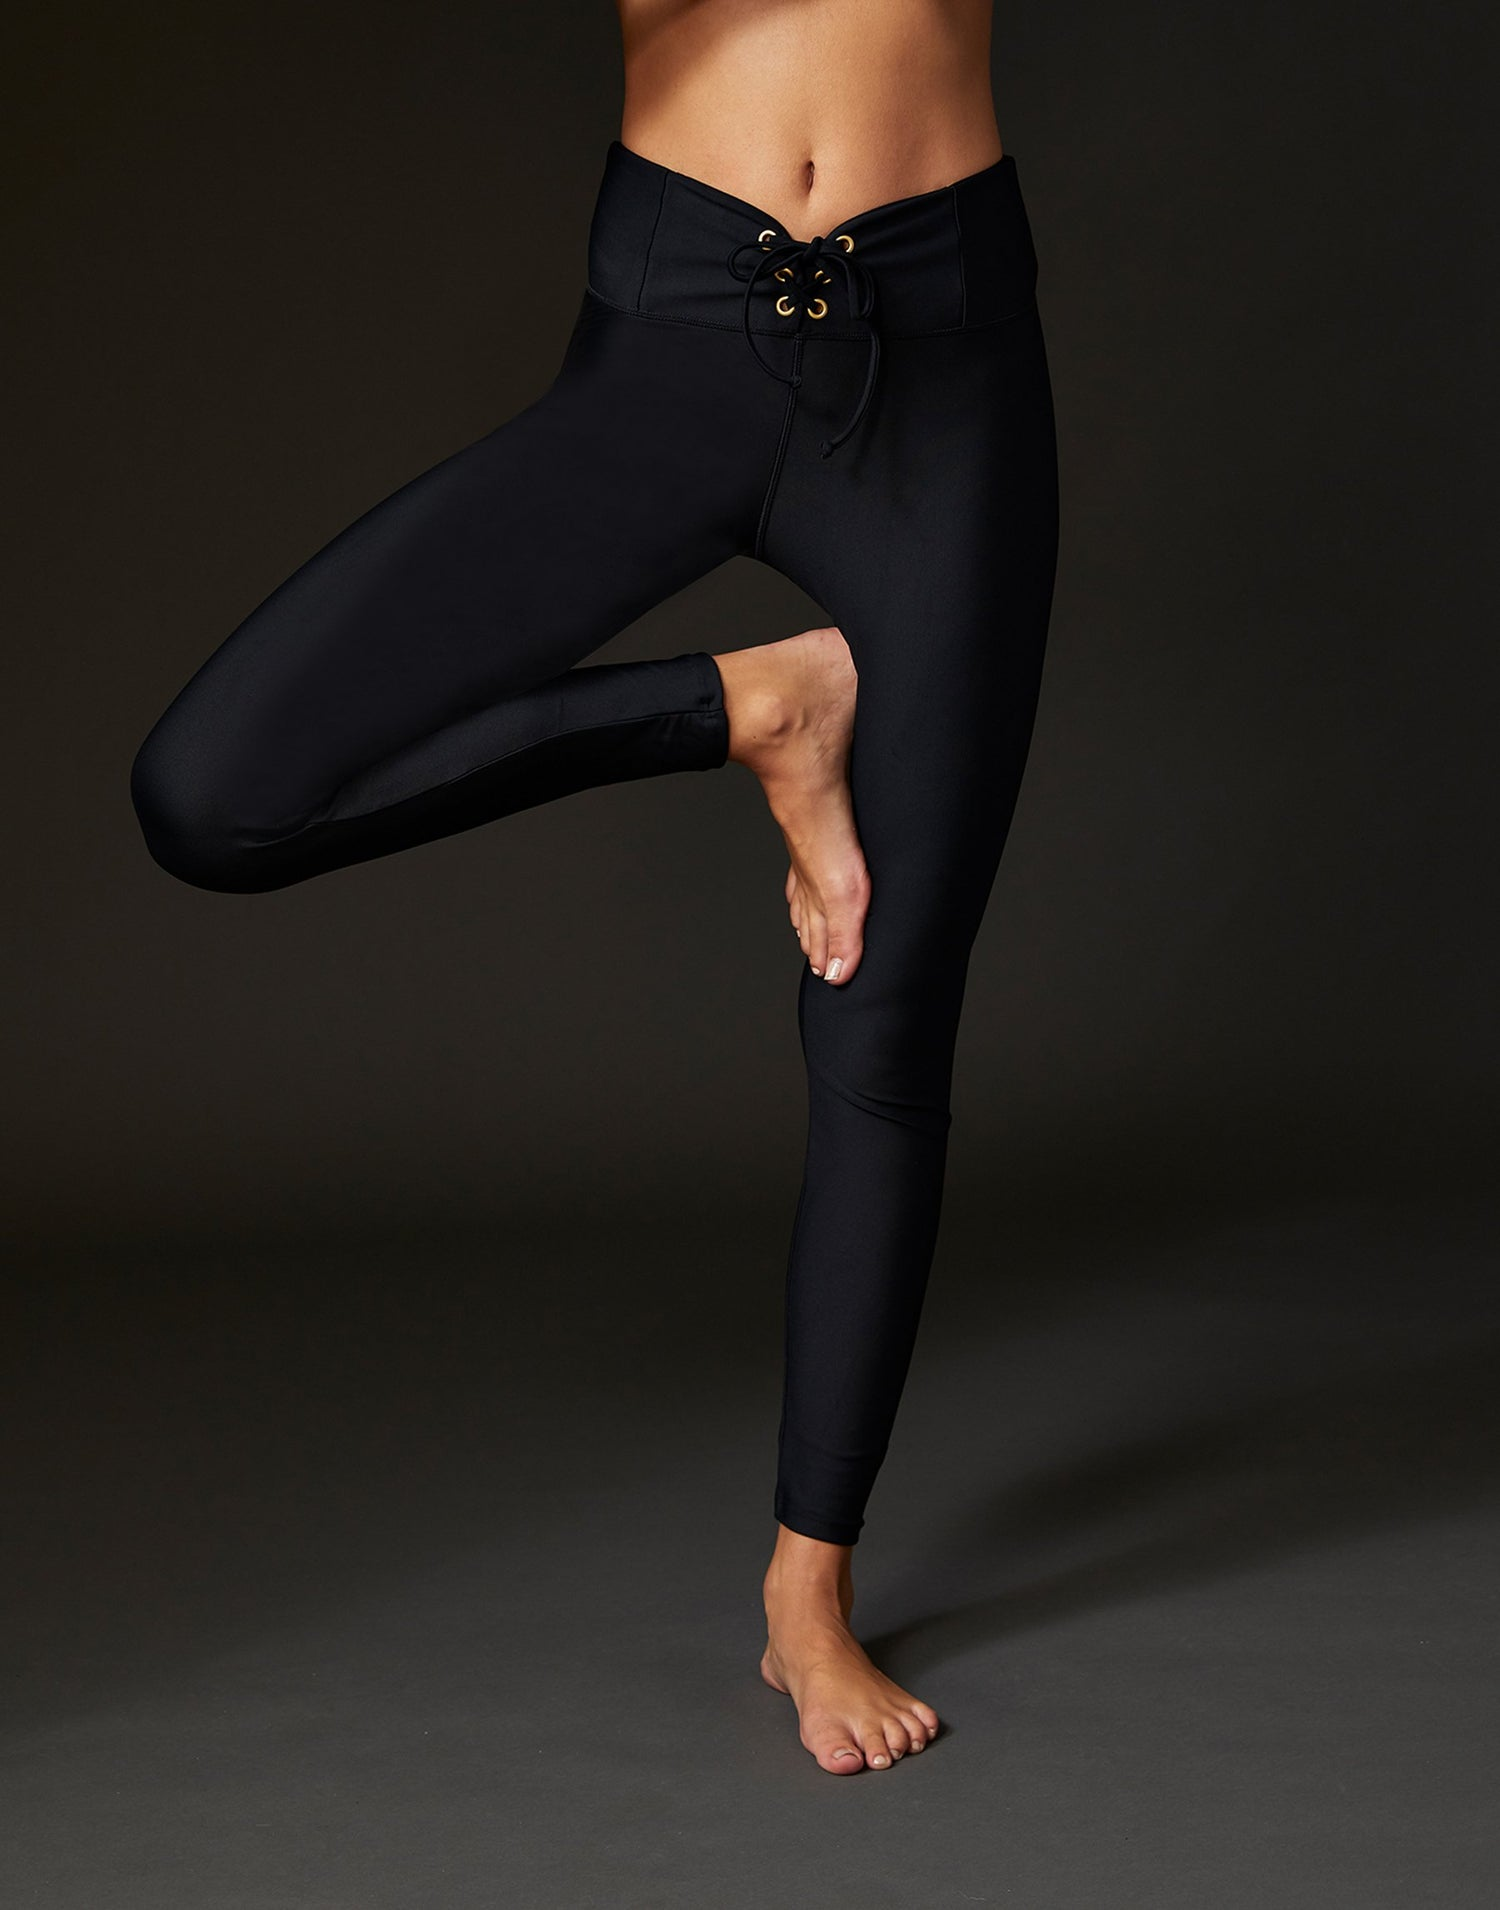 Adult Payton Legging with Lace Up Detail in Black - alternate front detail view